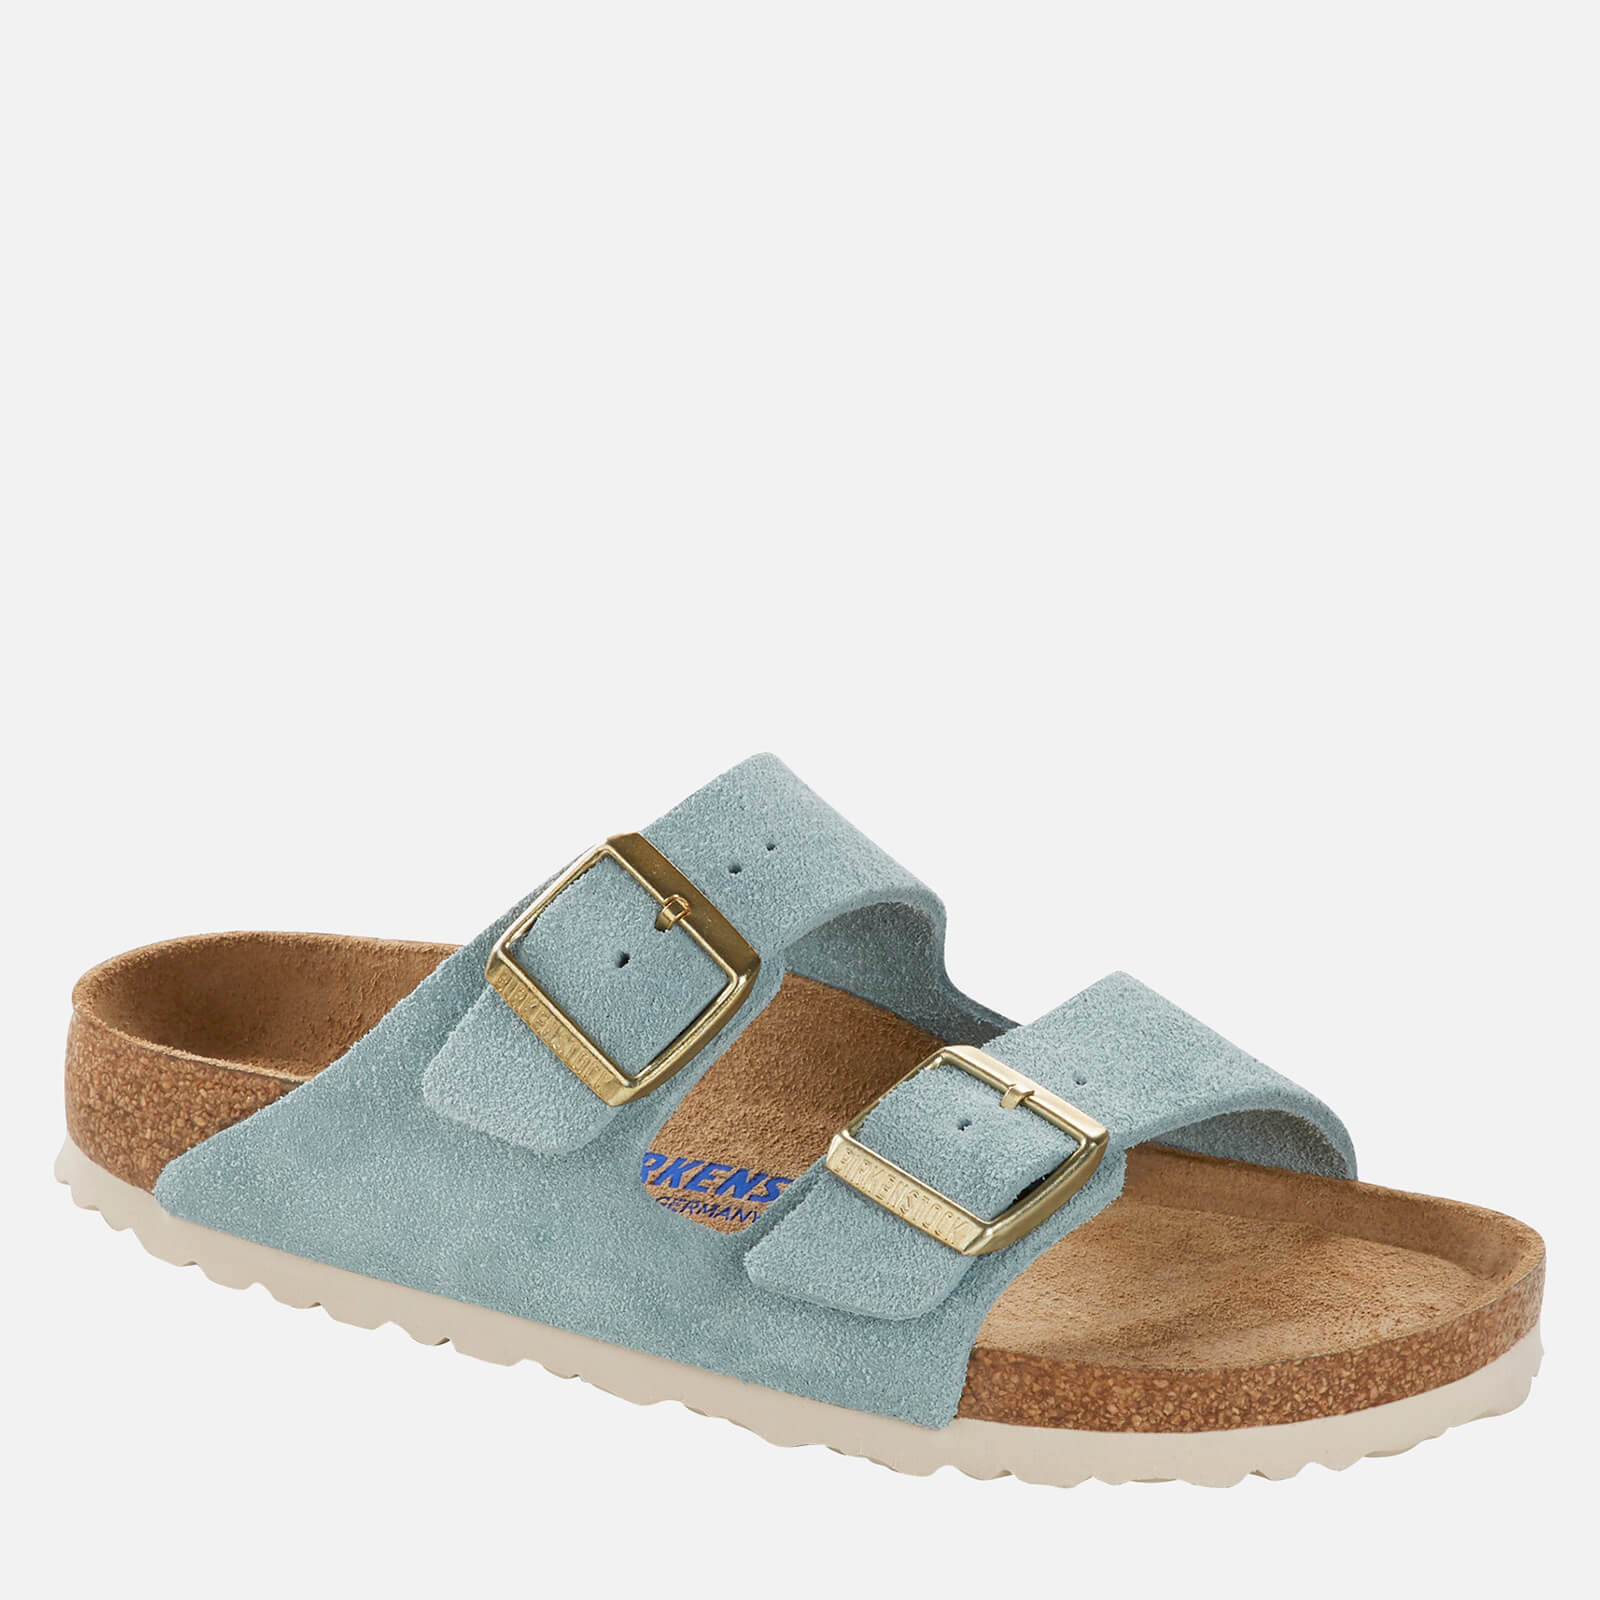 Click to view product details and reviews for Birkenstock Womens Arizona Sfb Suede Double Strap Sandals Light Blue Eu 36 Uk 35.